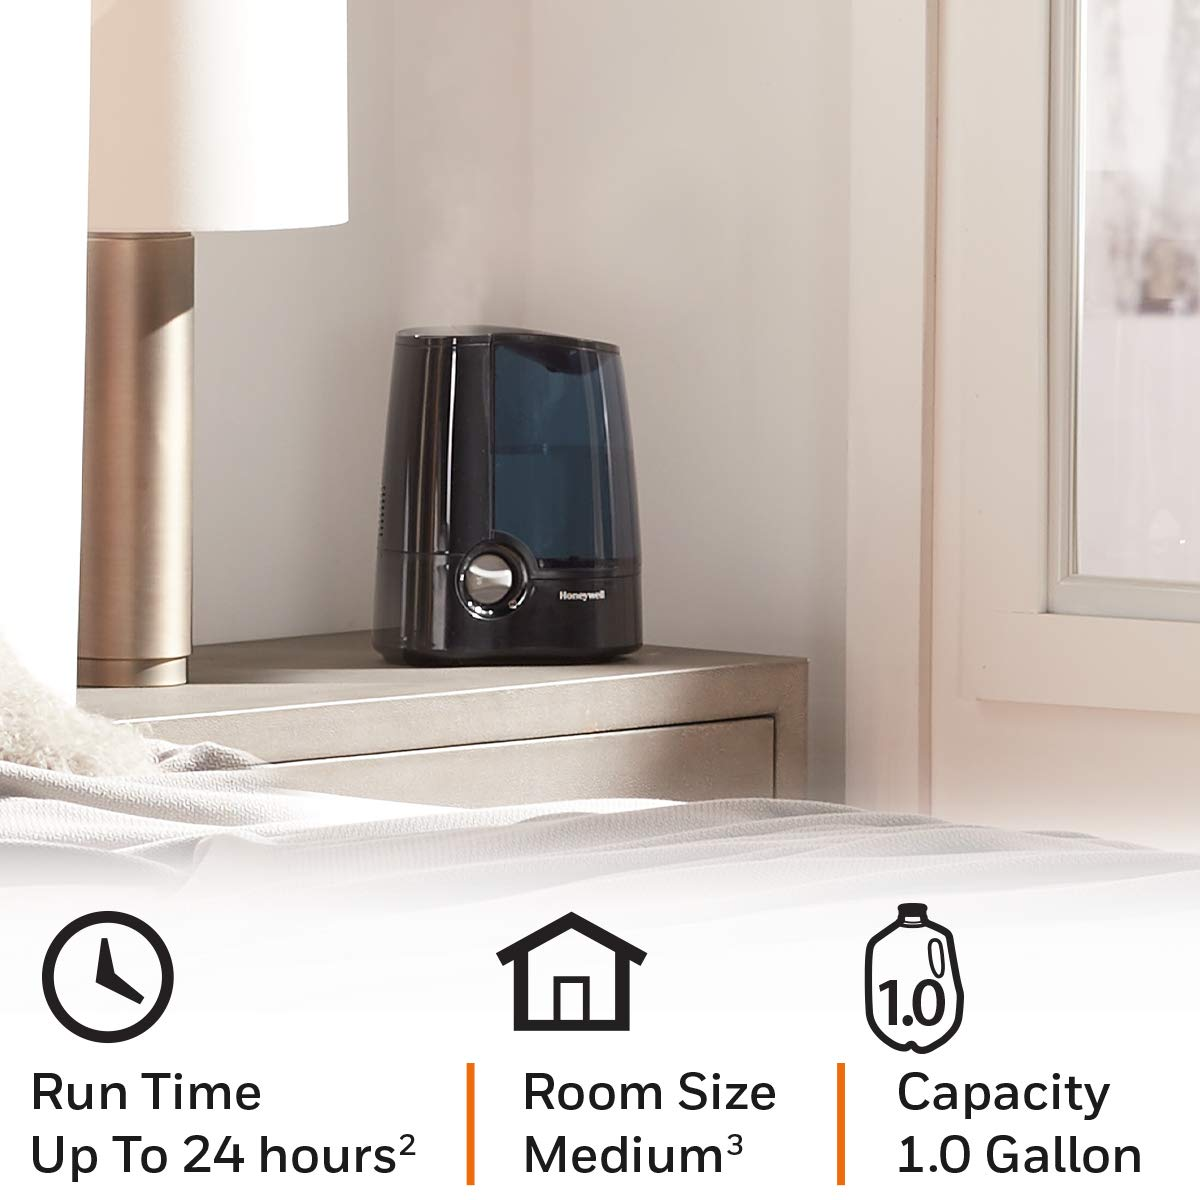 Honeywell HWM705B Filter Free Warm Moisture Humidifier Black Ultra Quiet Filter Free with High & Low Settings, 1 Gallon Tank for Office, Bedroom, Baby